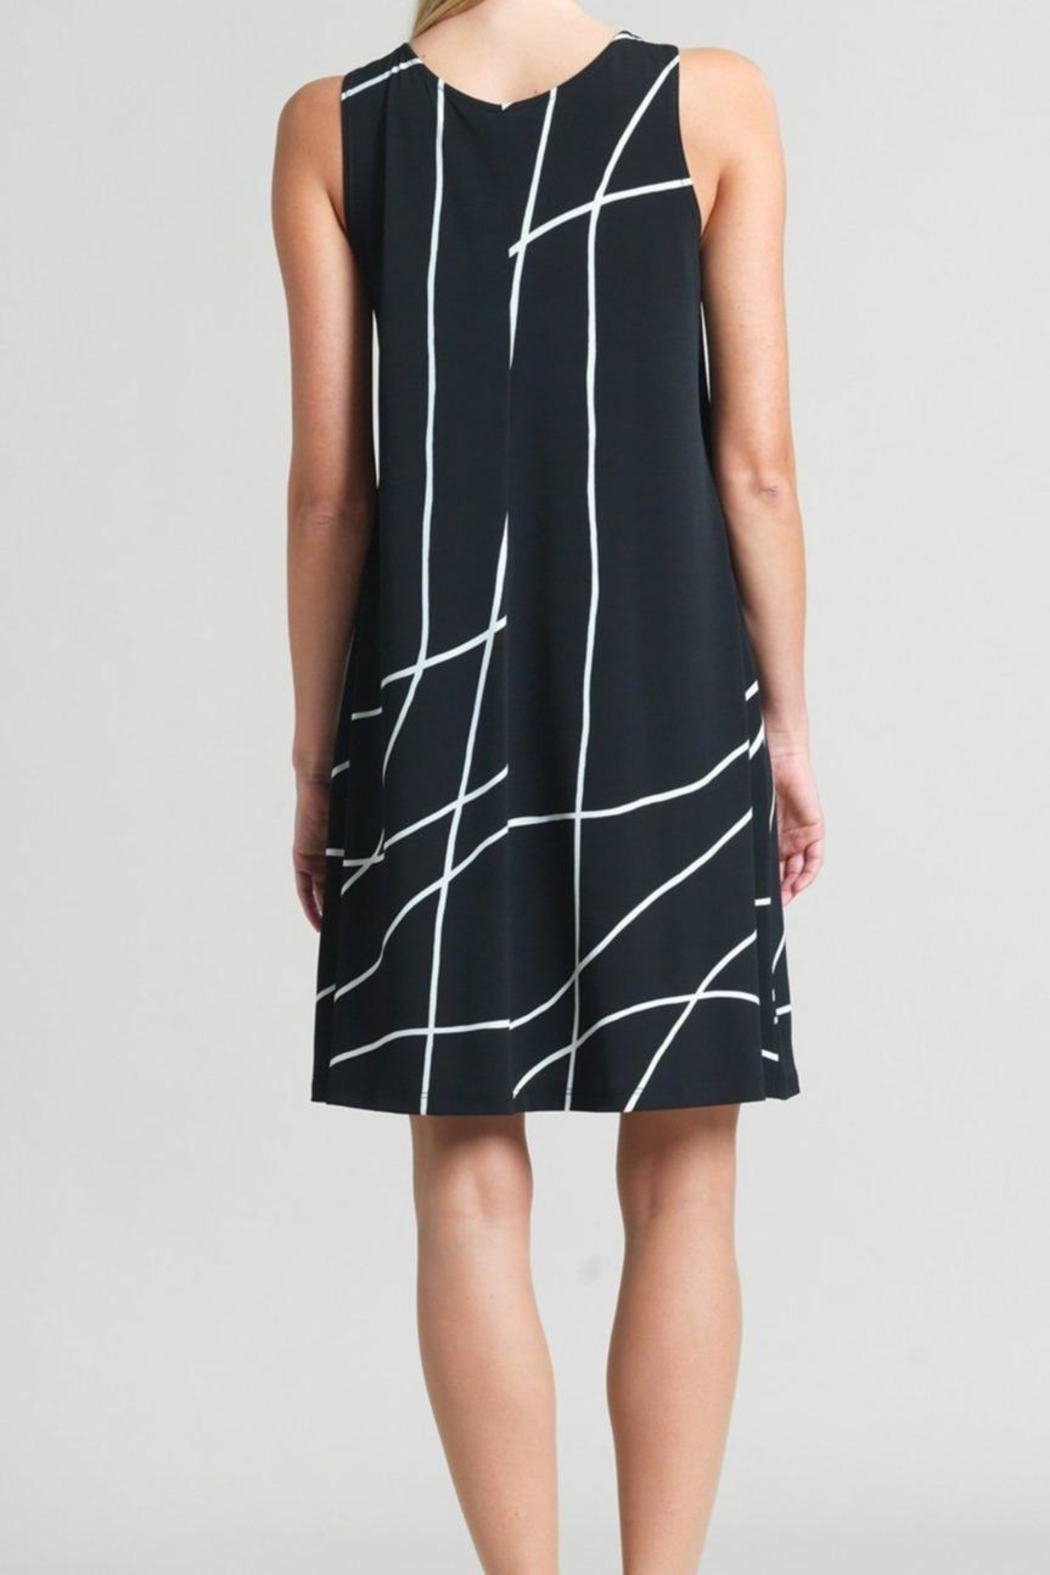 Clara Sunwoo Swirl Lines Dress - Side Cropped Image